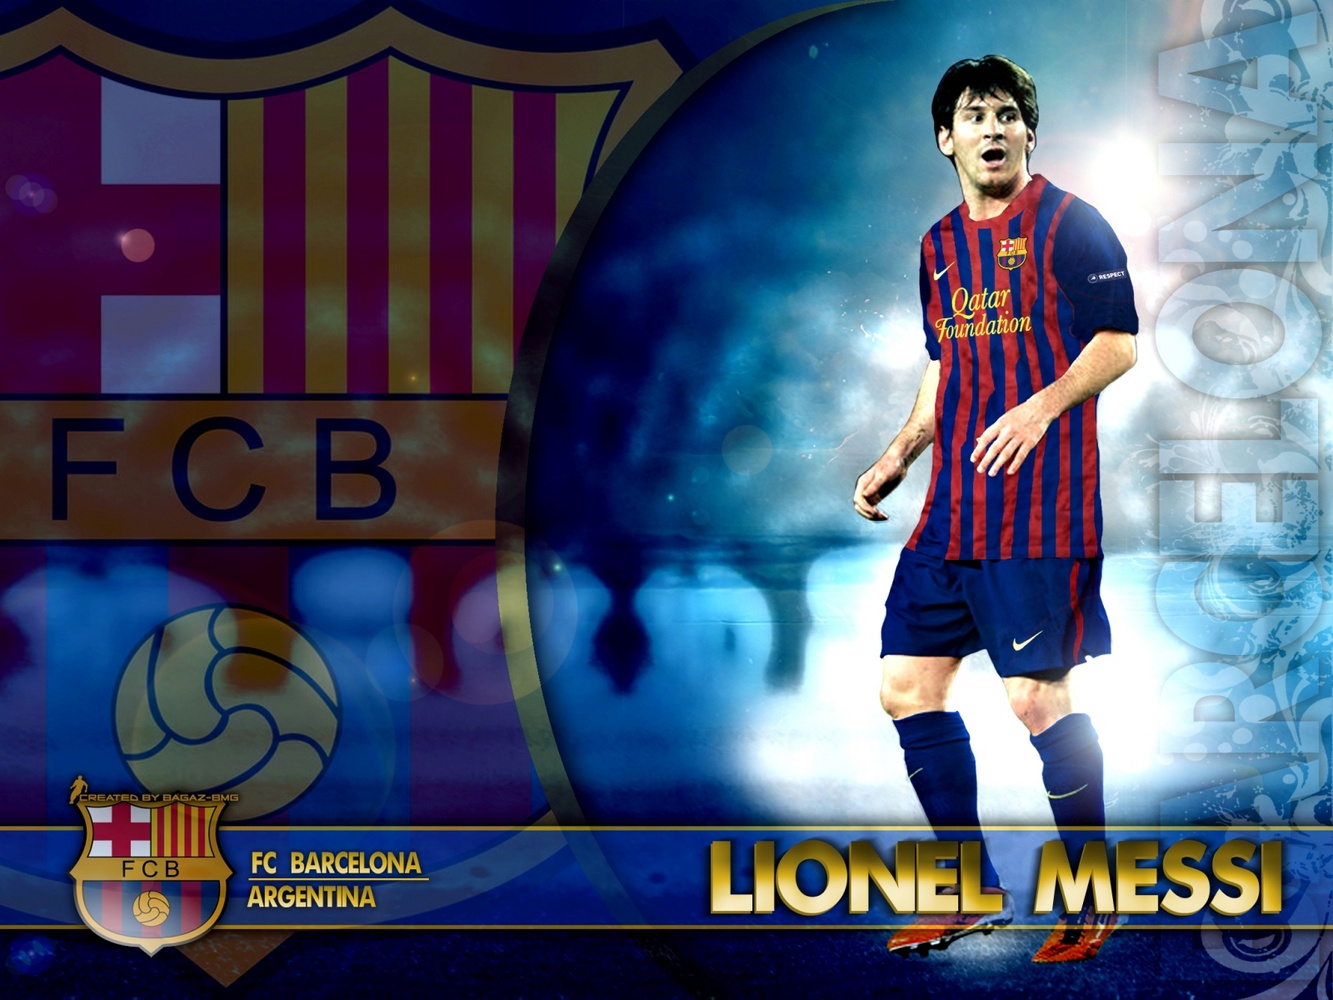 football wallpapers lionel messi new wallpapers